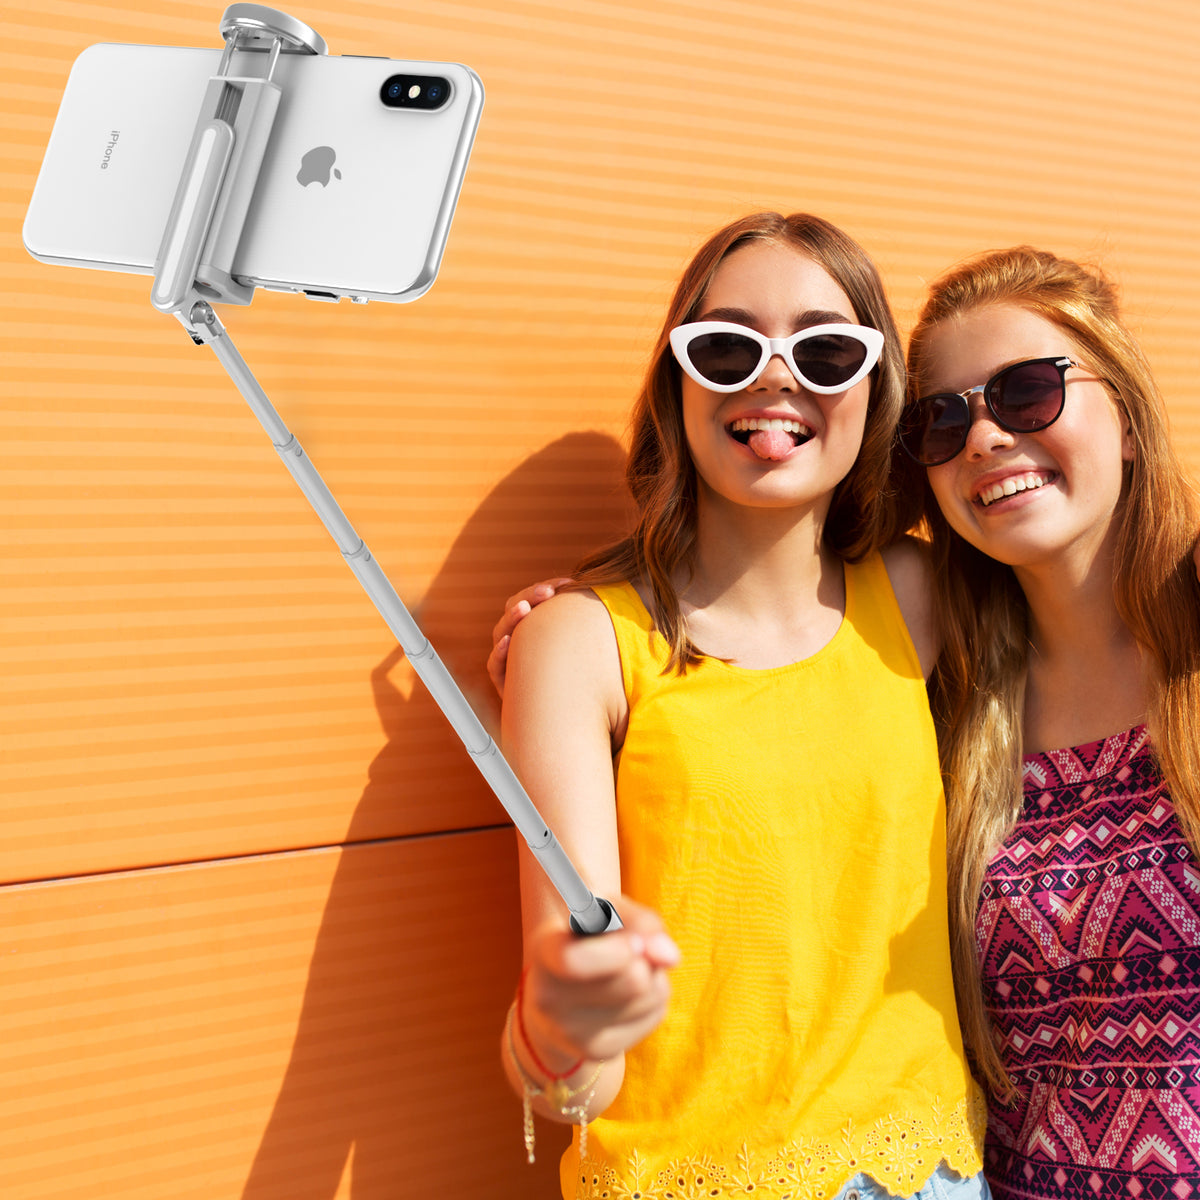 3 in 1 Bluetooth Selfie Stick Tripod with Wireless Remote-ATUMTEK